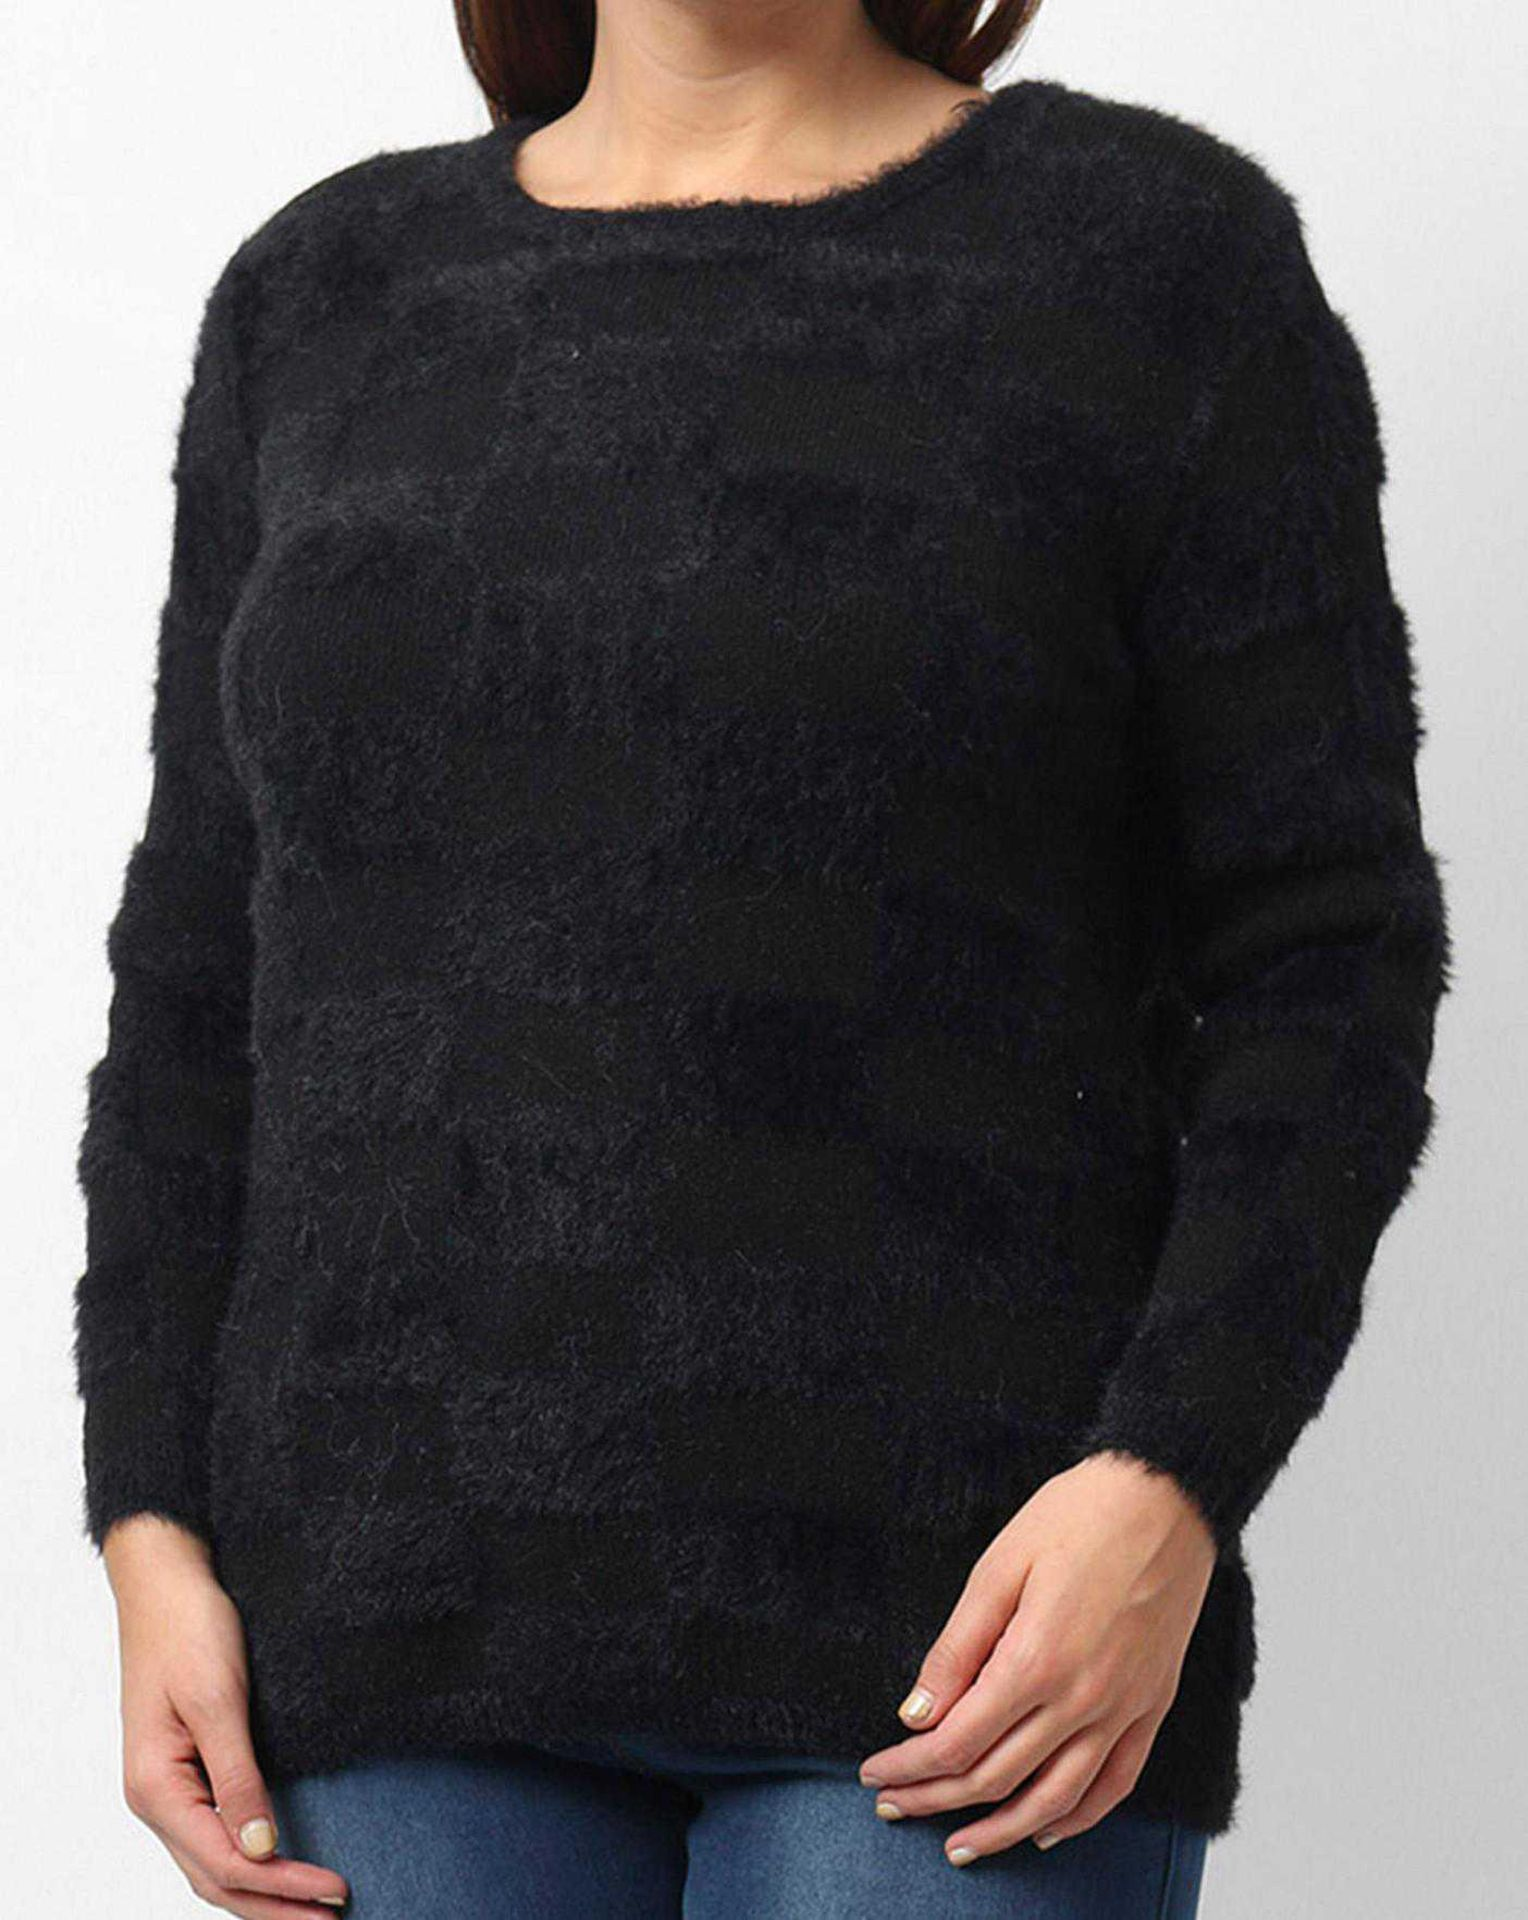 RRP £210 Lot To Contain 7 Brand New Tagged/Bagged Women'S Size 16/18 Koko Check Jumpers. Sourced - Image 2 of 2